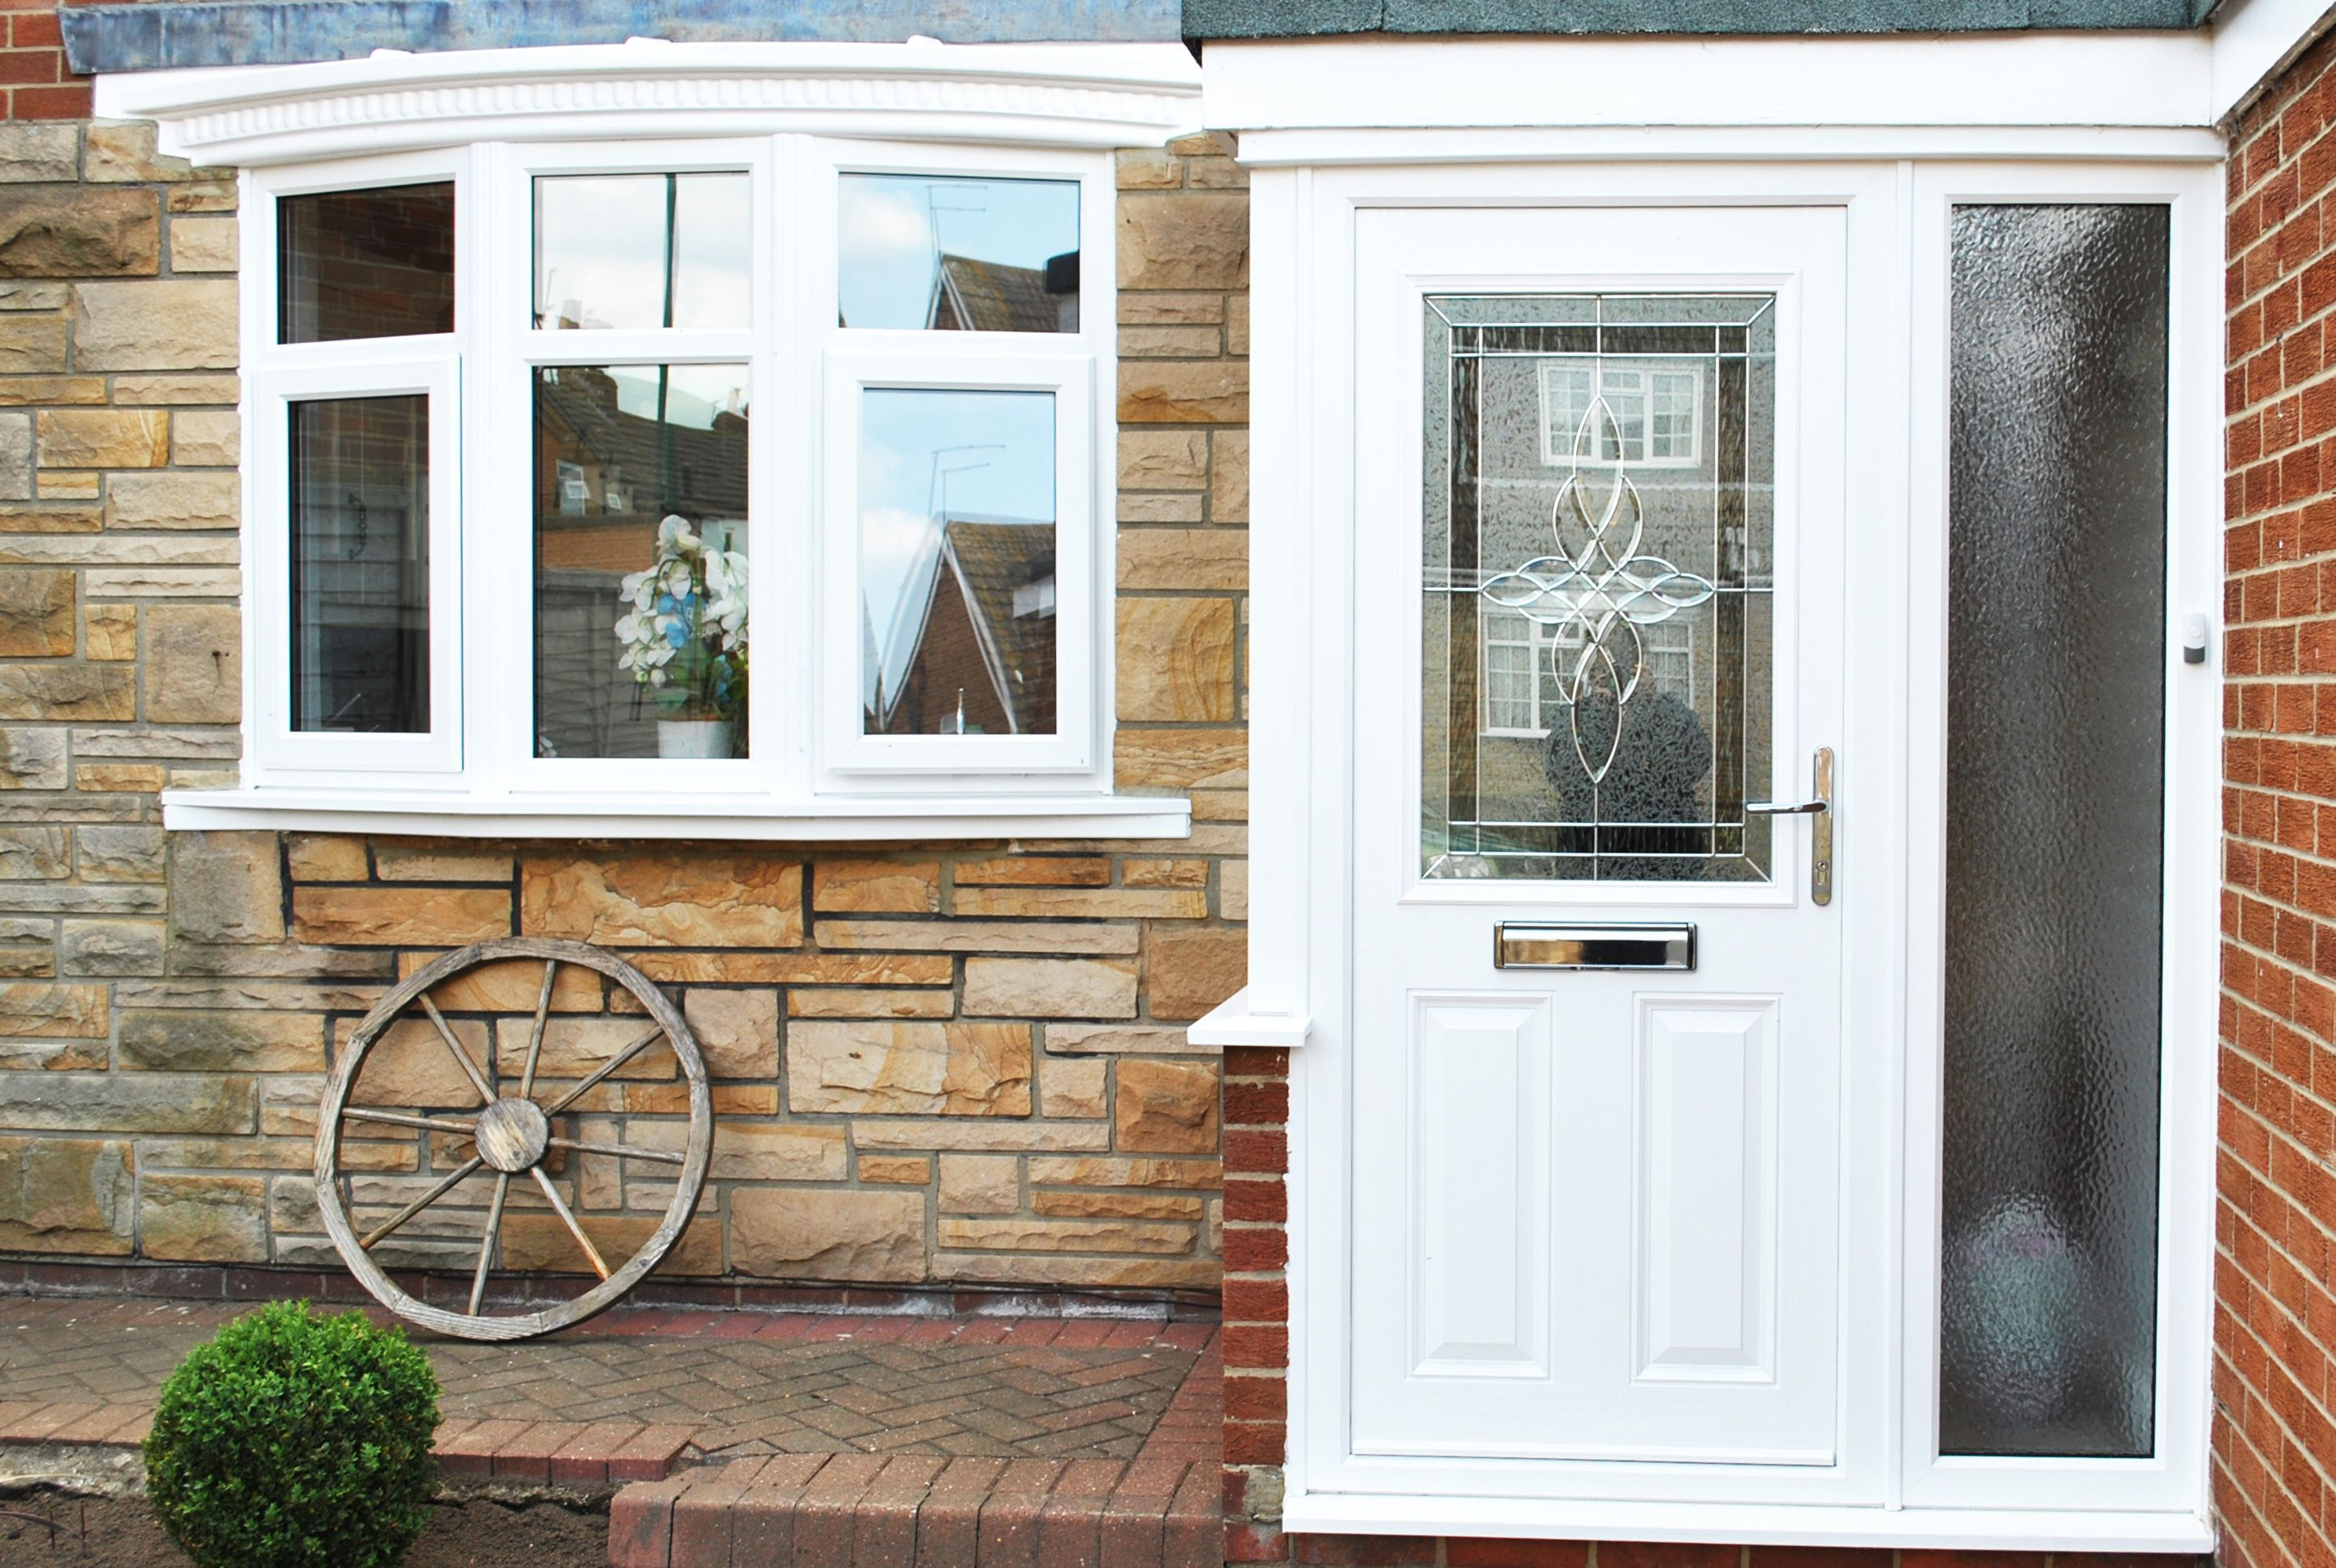 Stunning White Parama Composite Door with Bespoke Unique Door Design and Full house of Windows in Rehau UPVC Inluding one Front Bow window with Bottom ... & Stunning White Parama Composite Door with Bespoke Unique Door ... Pezcame.Com